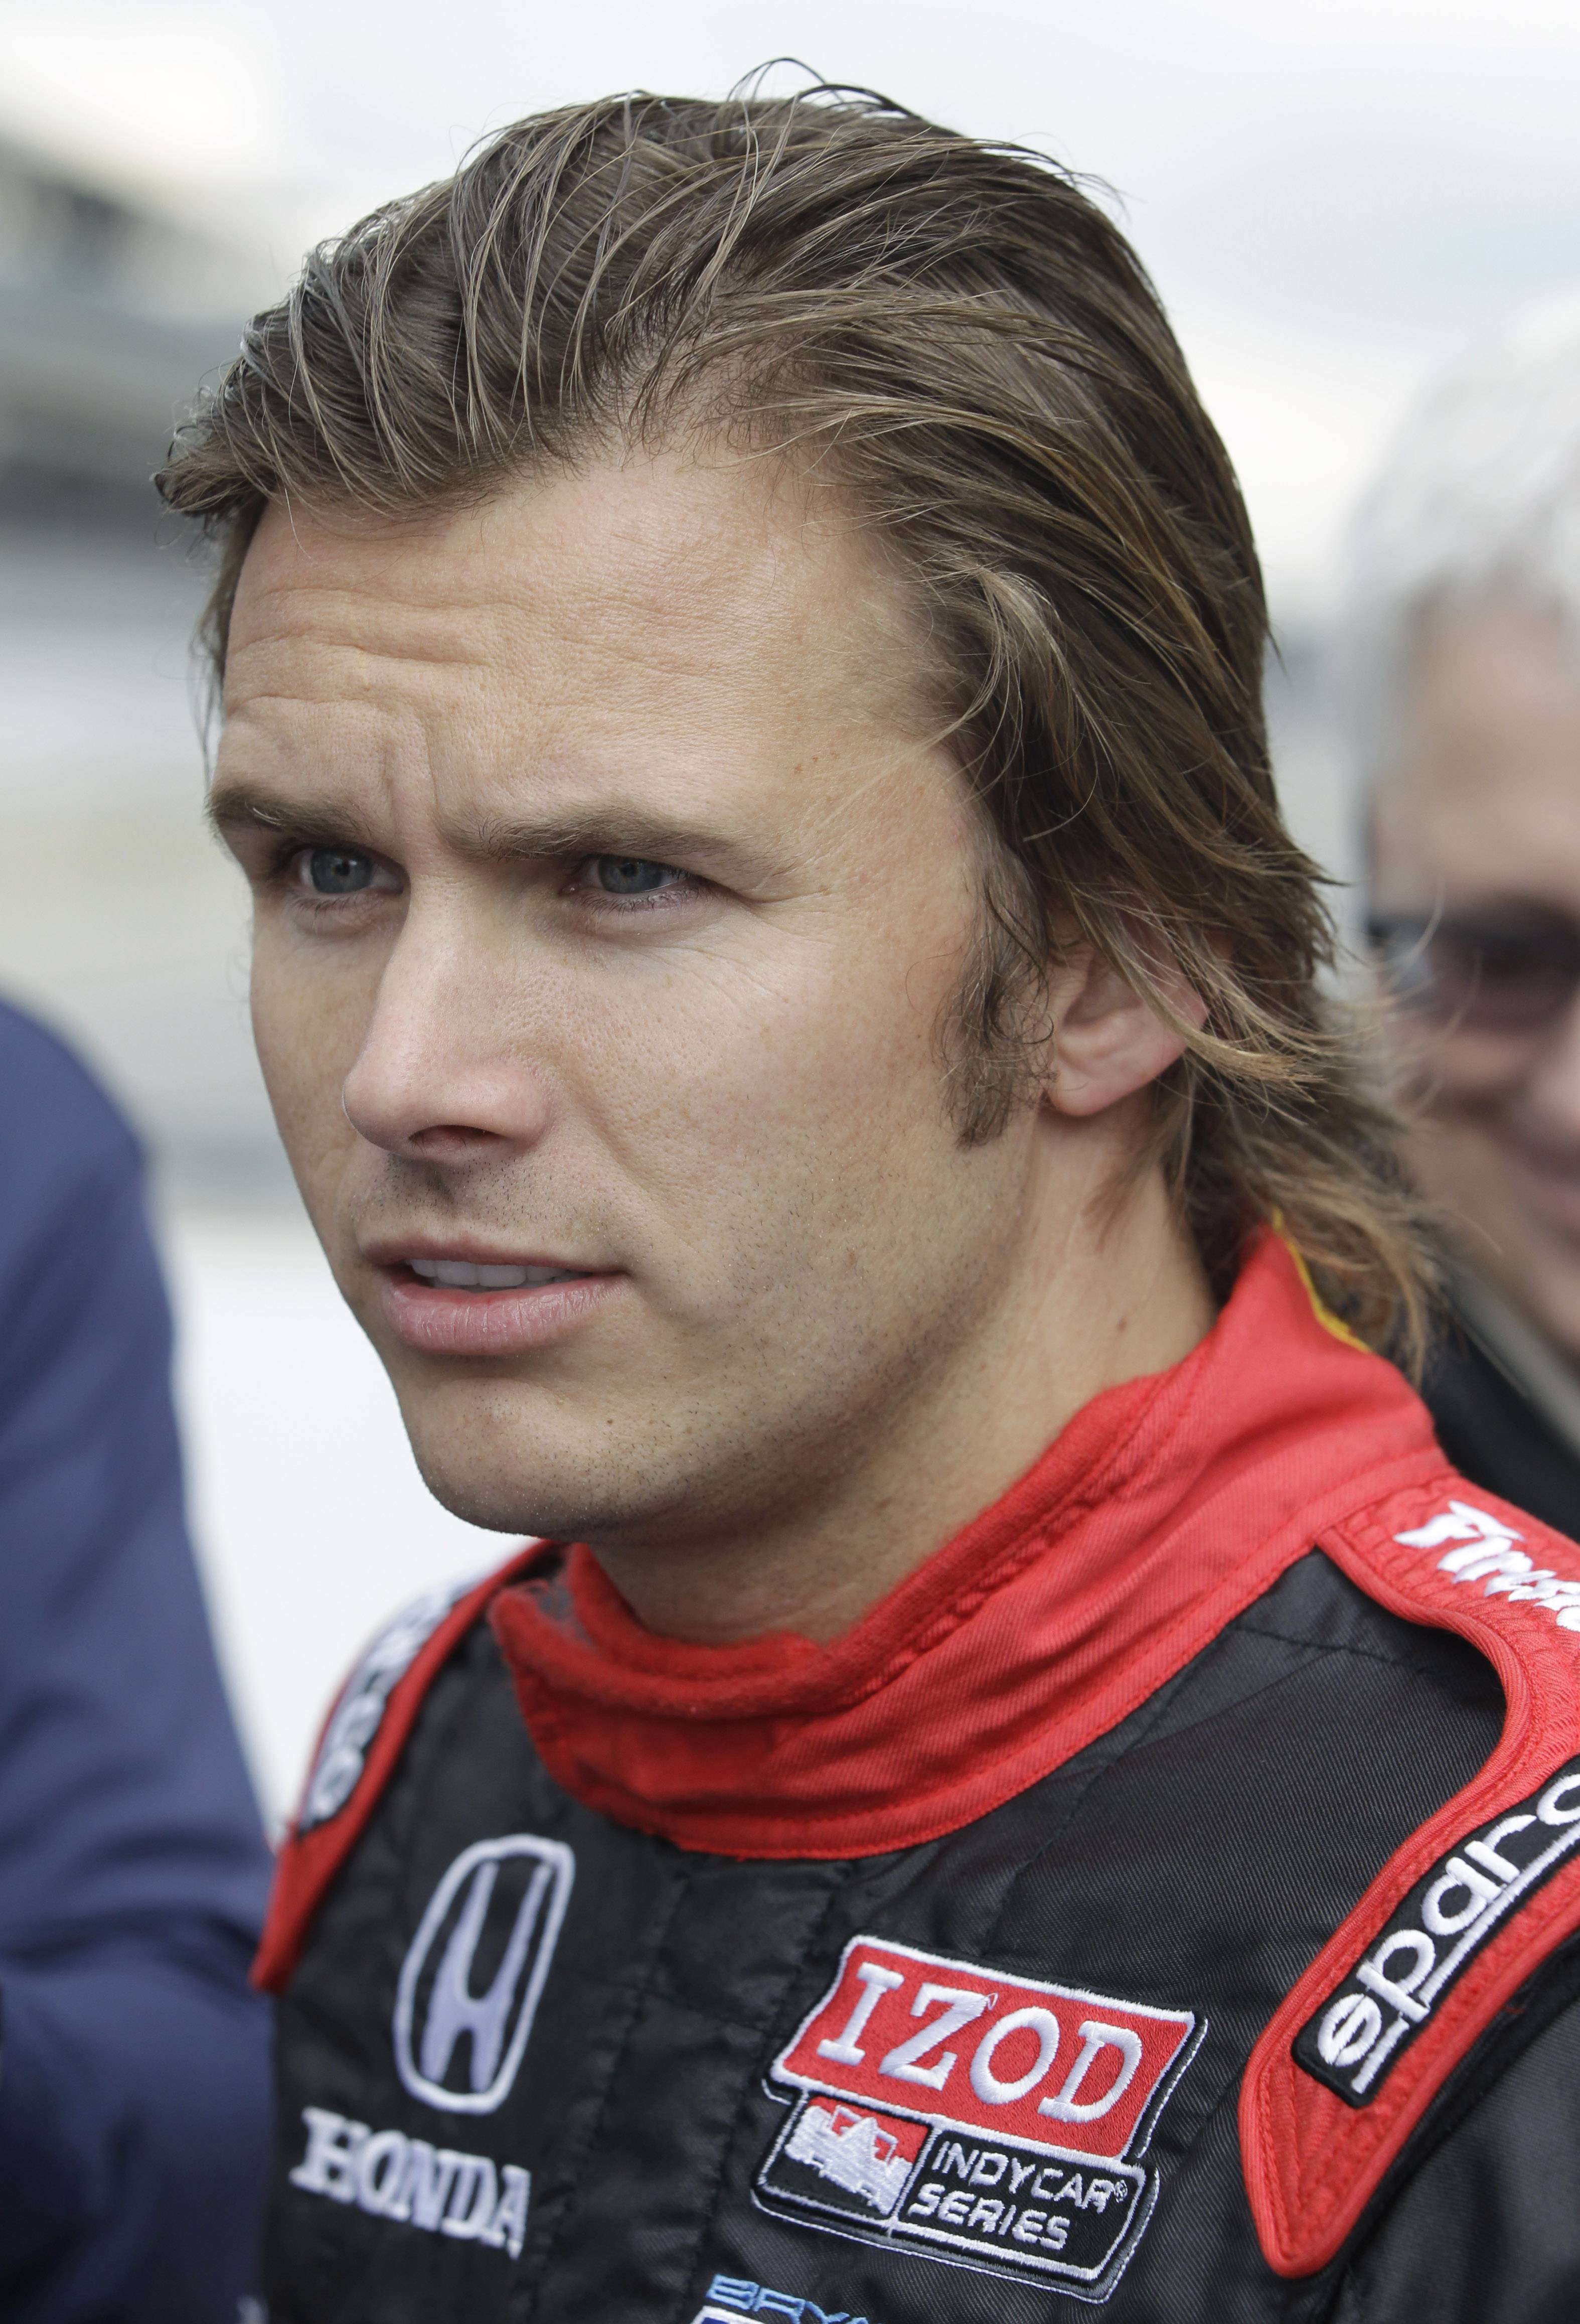 On Sept. 27, Dan Wheldon talks about the 2012 IndyCar vehicle at Indianapolis Motor Speedway. Wheldon died after a crash at the IndyCar Series race in Las Vegas.